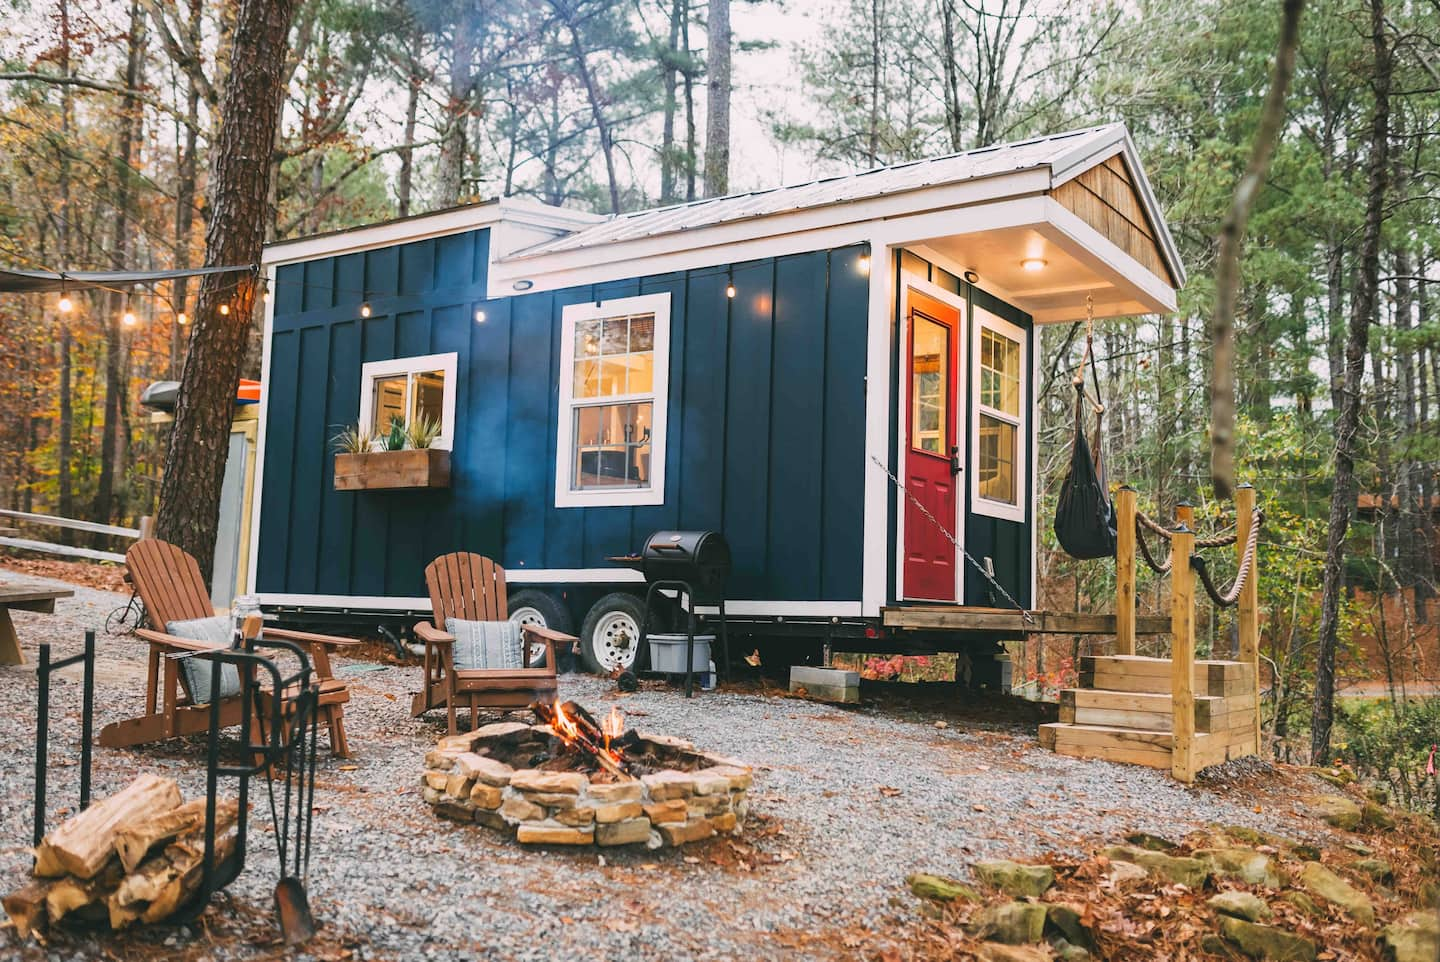 15 Tiny Houses in Alabama You Can Rent on Airbnb!